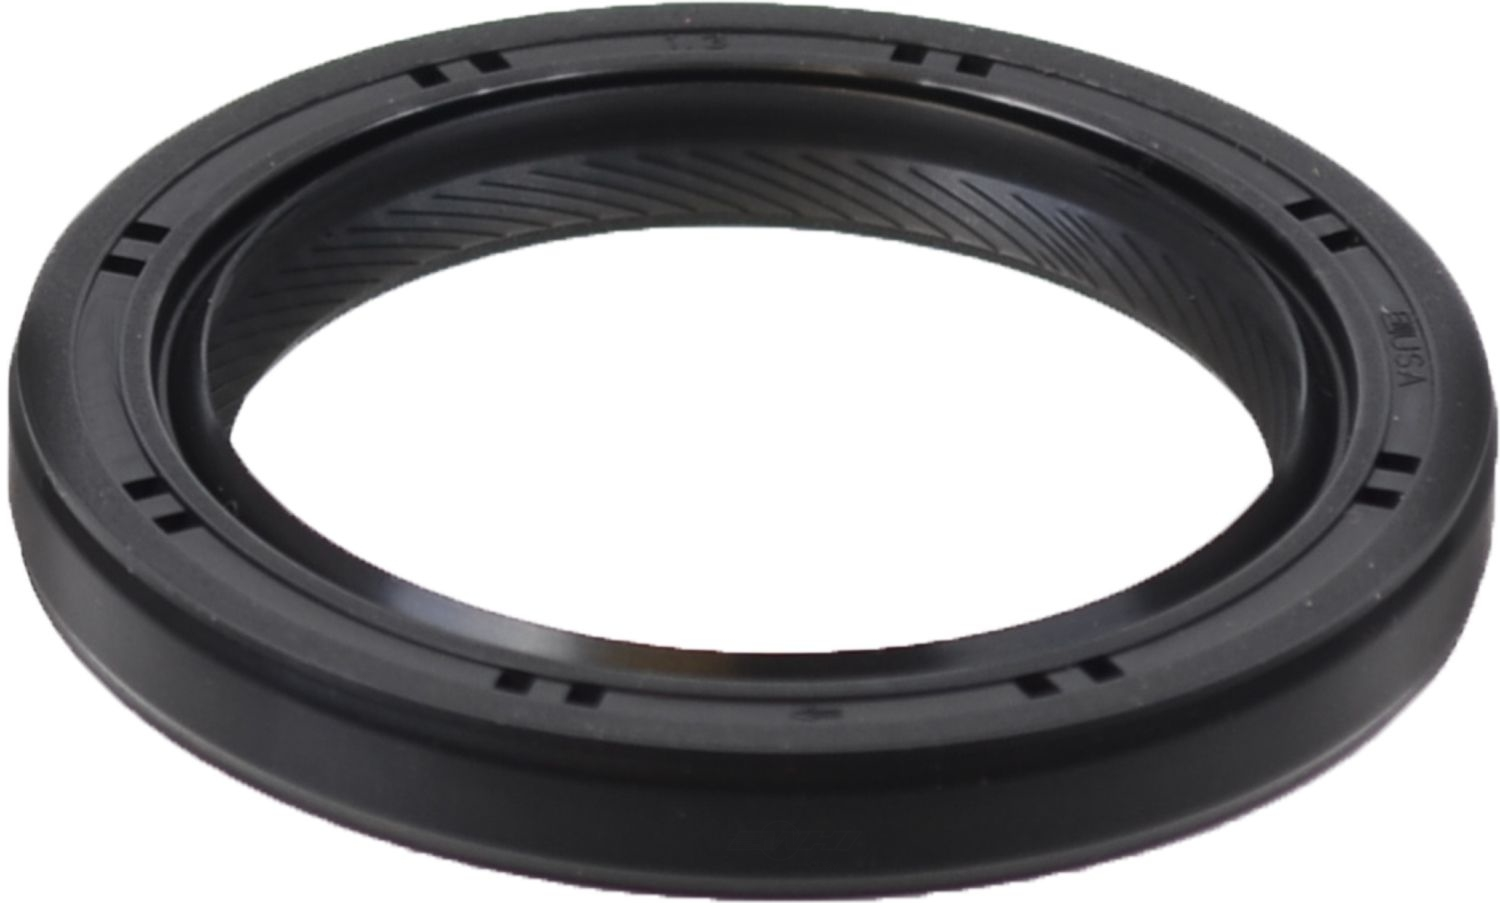 SKF (CHICAGO RAWHIDE) - Auto Trans Oil Pump Seal - SKF 16896